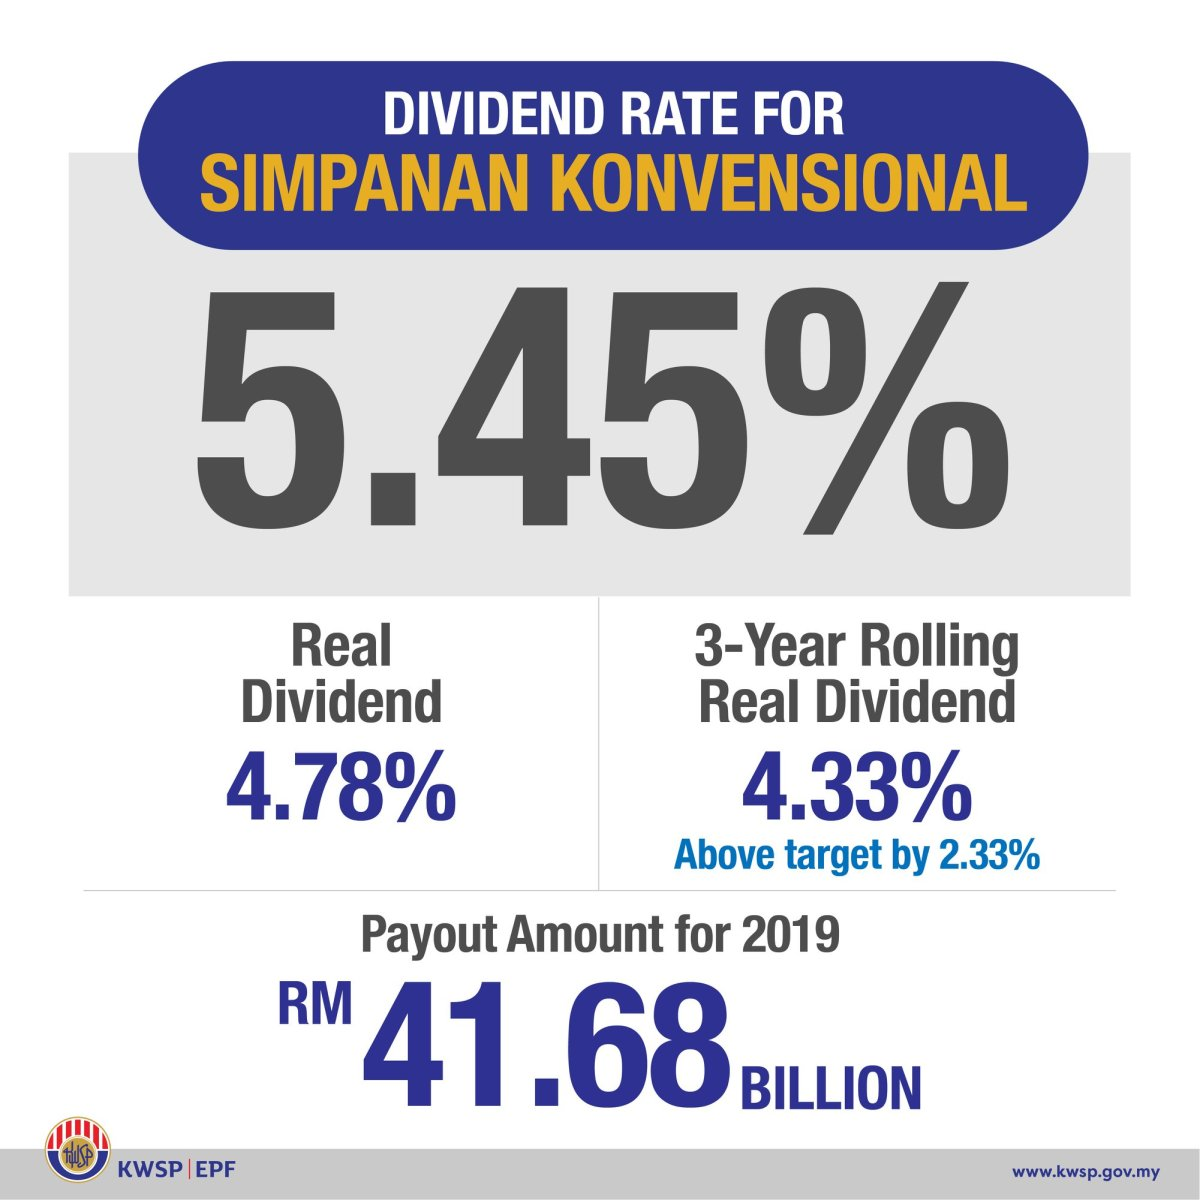 epf dividend rate 2019 conventional